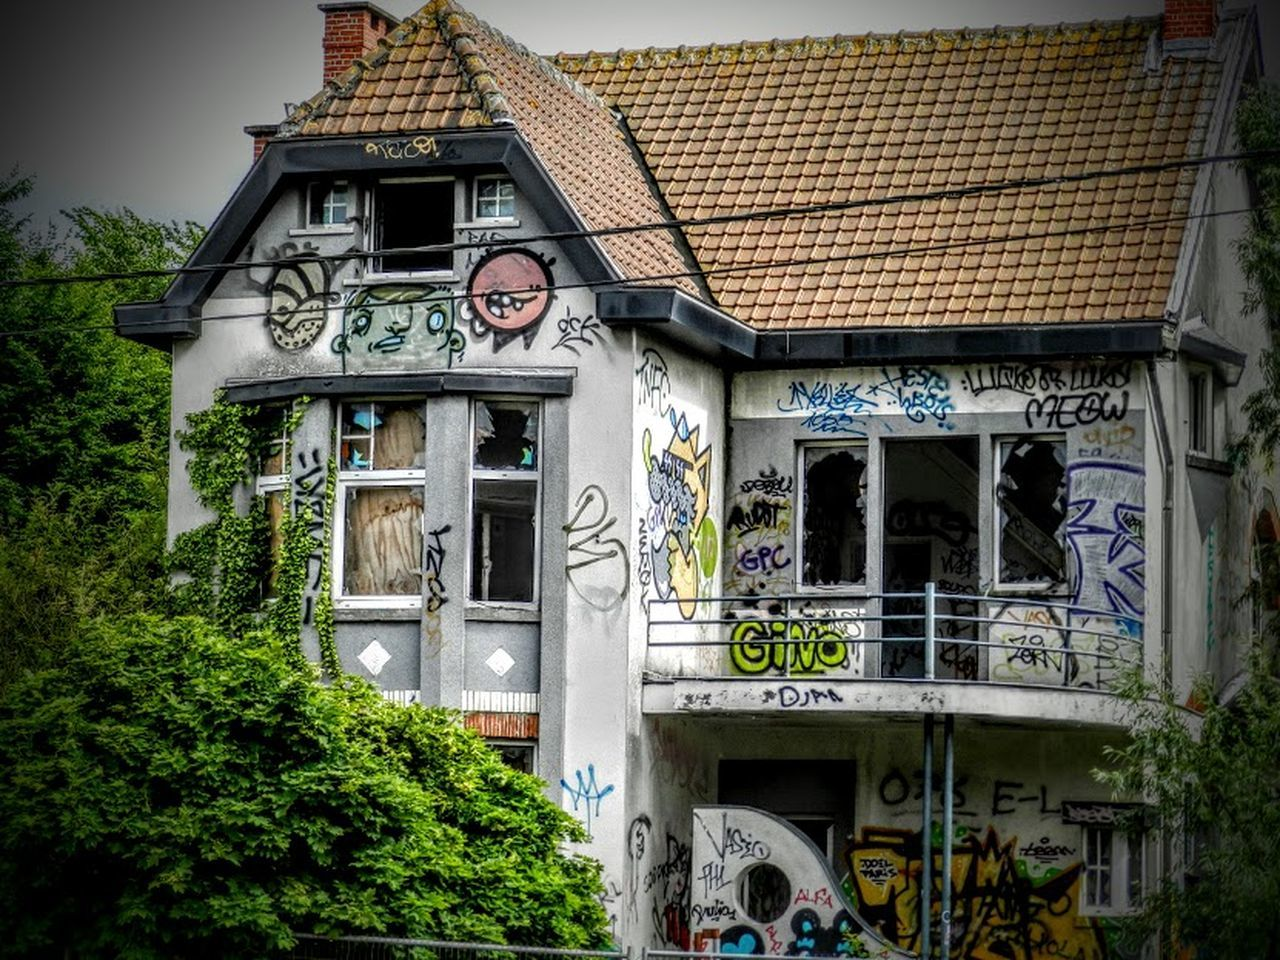 Abondened Places Abondonedcity Architecture Doel Graffiti No People Outdoors Urban Urbanplace